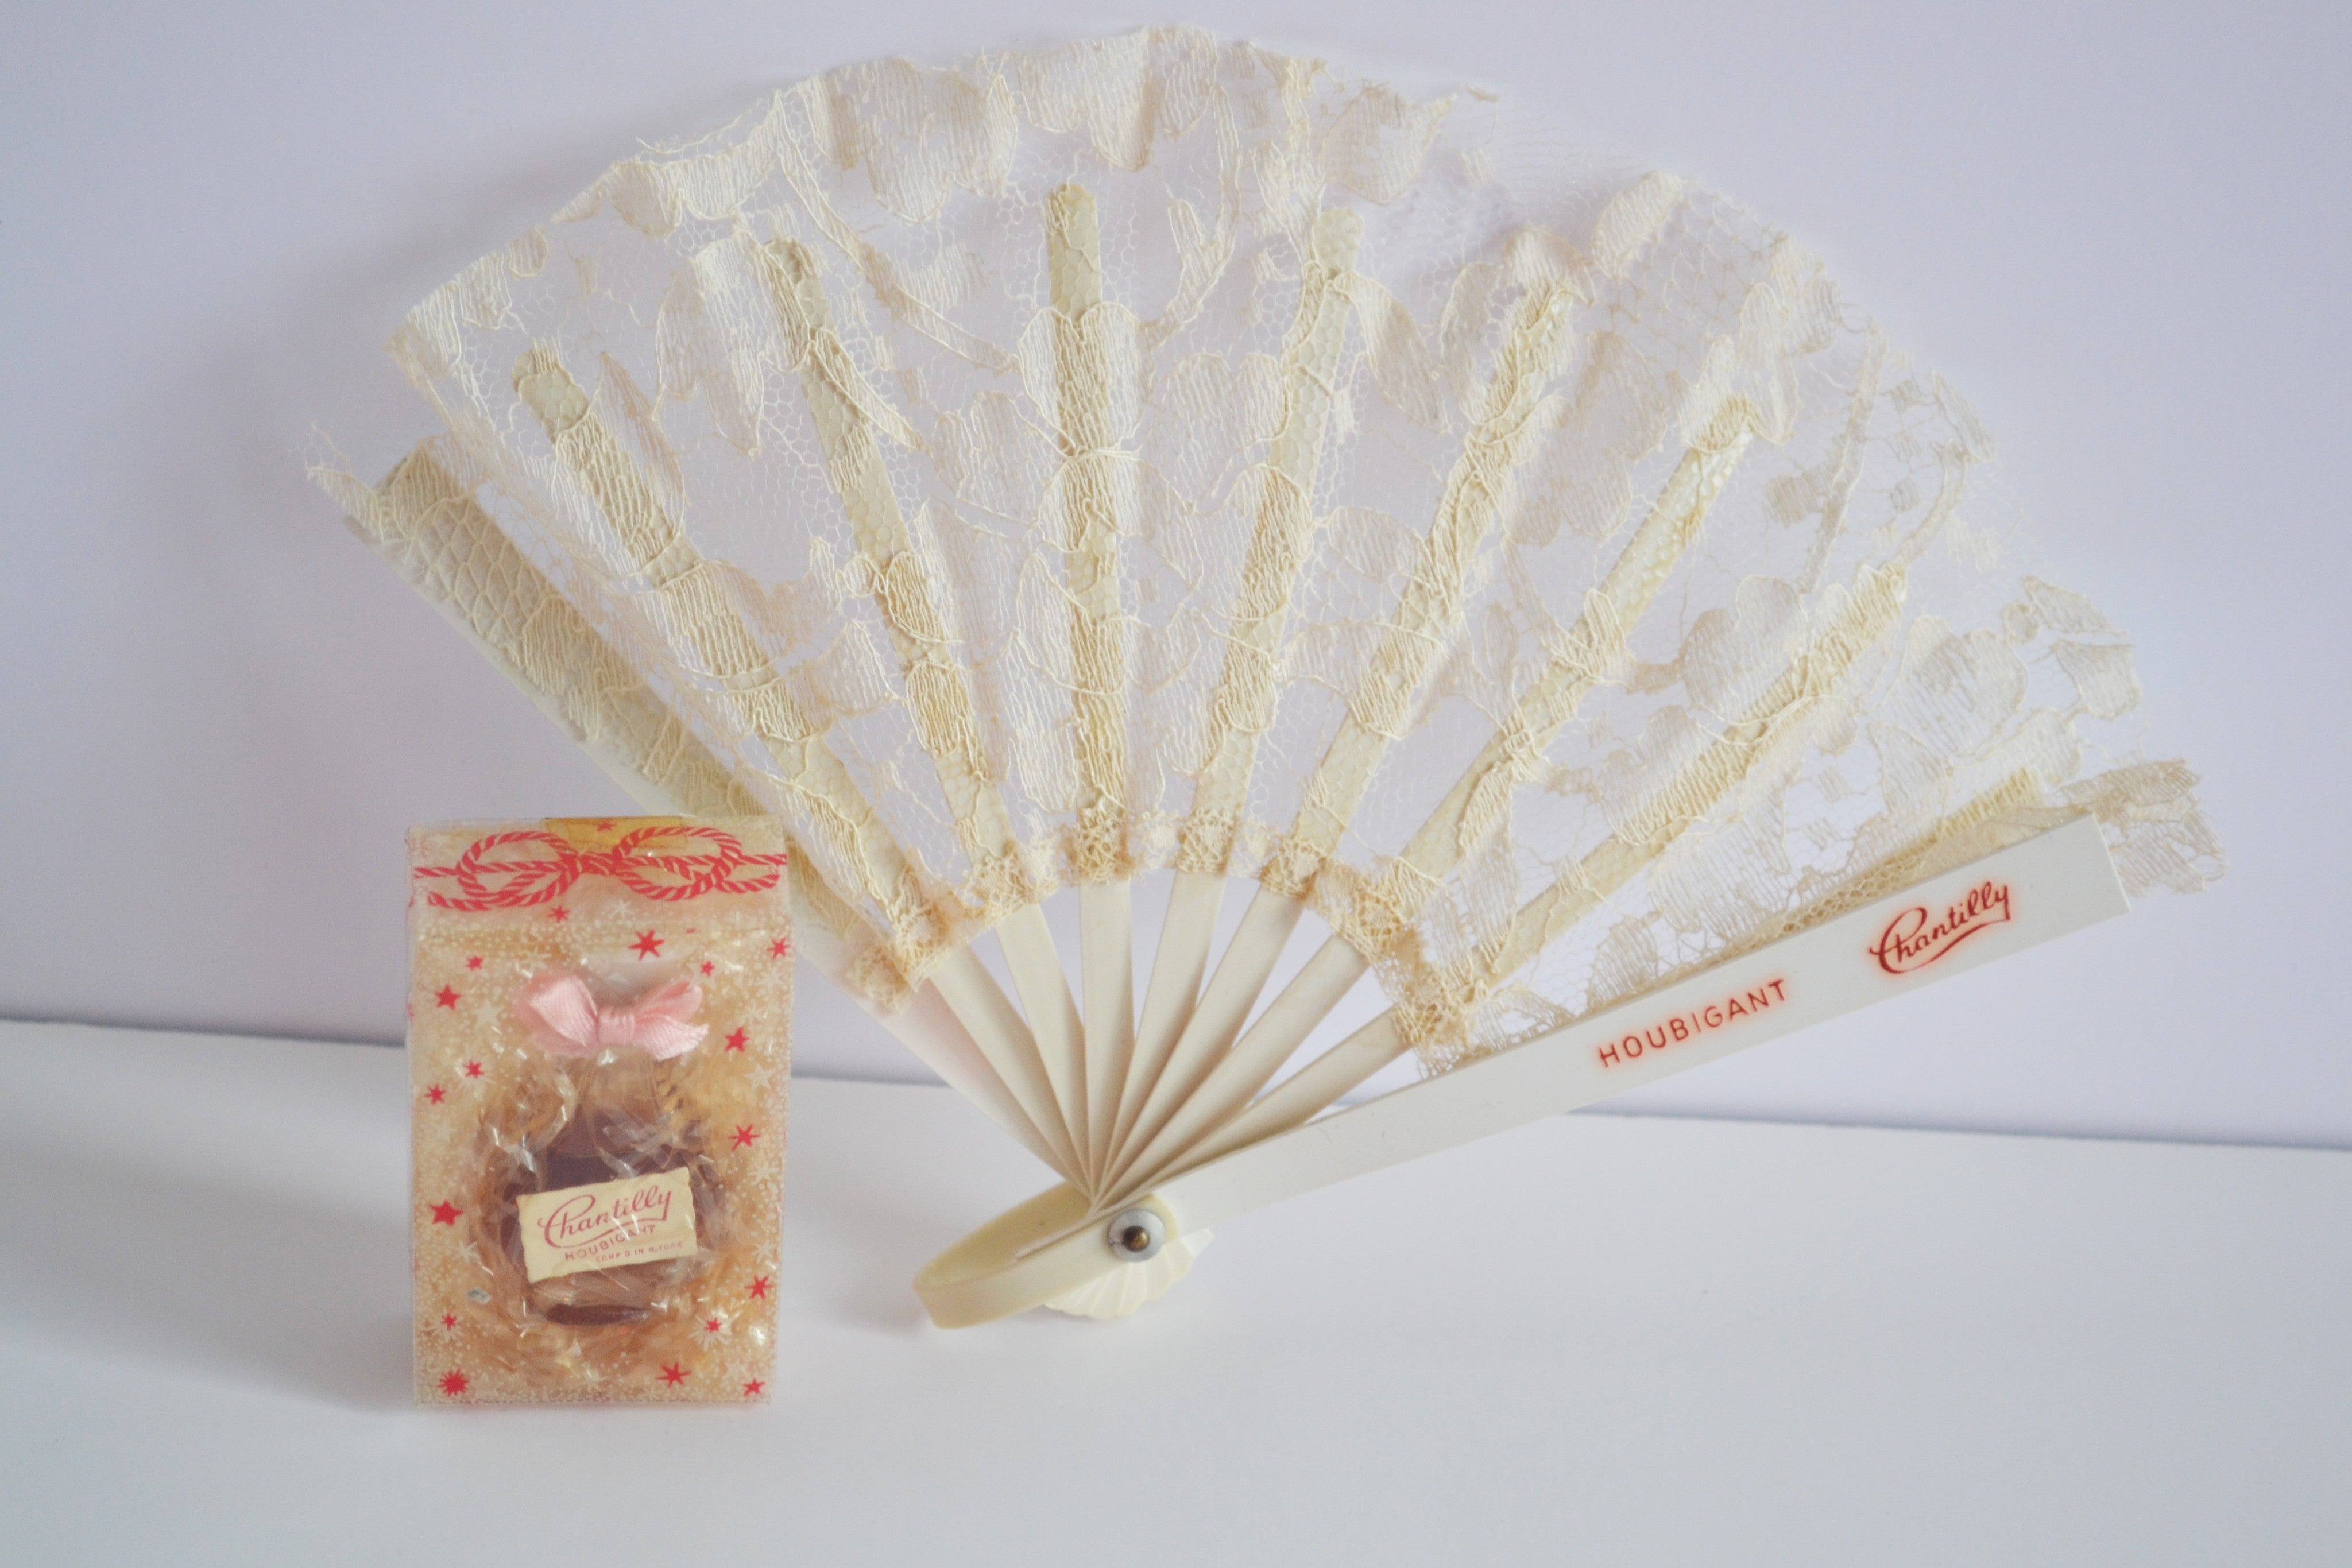 Vintage Chantilly Perfume & Lace Fan Presentation By Houbigant